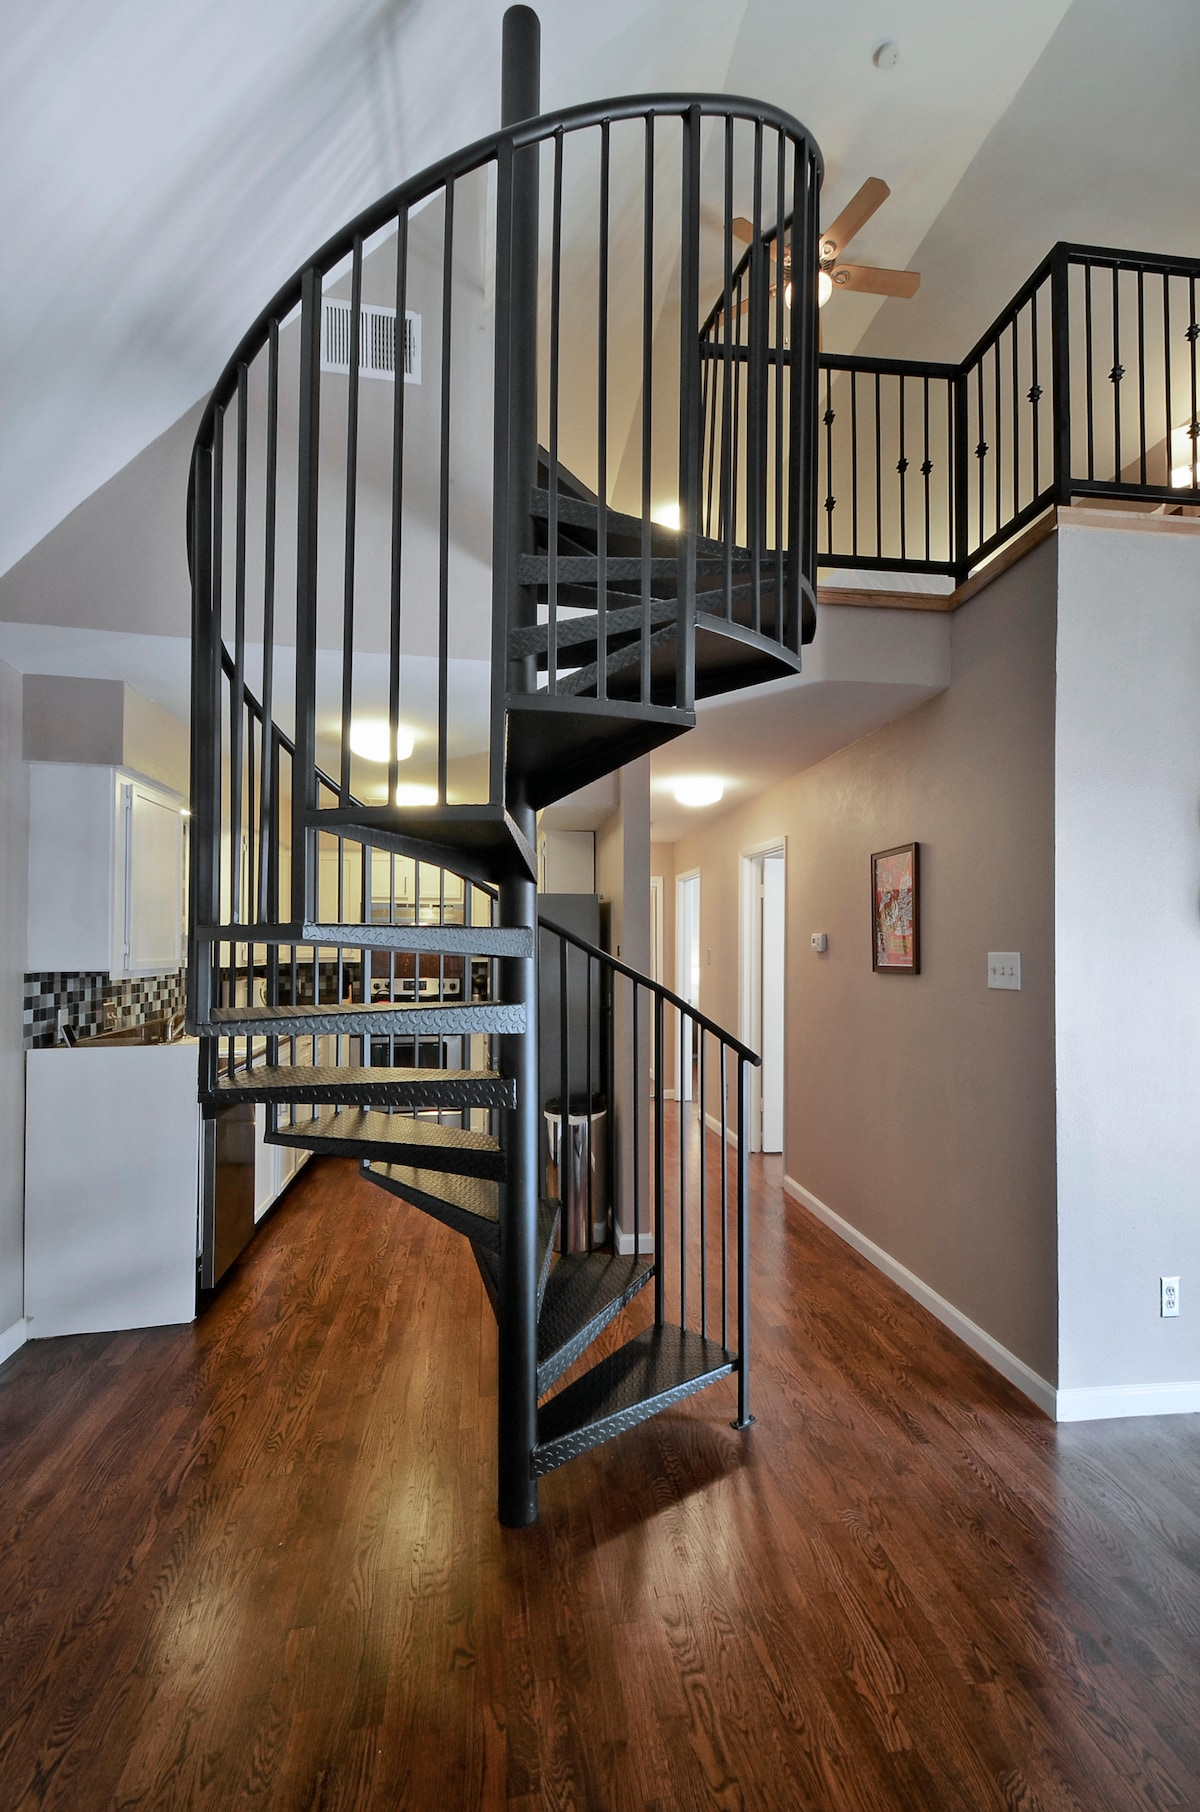 Our spiral staircase leads to the loft.